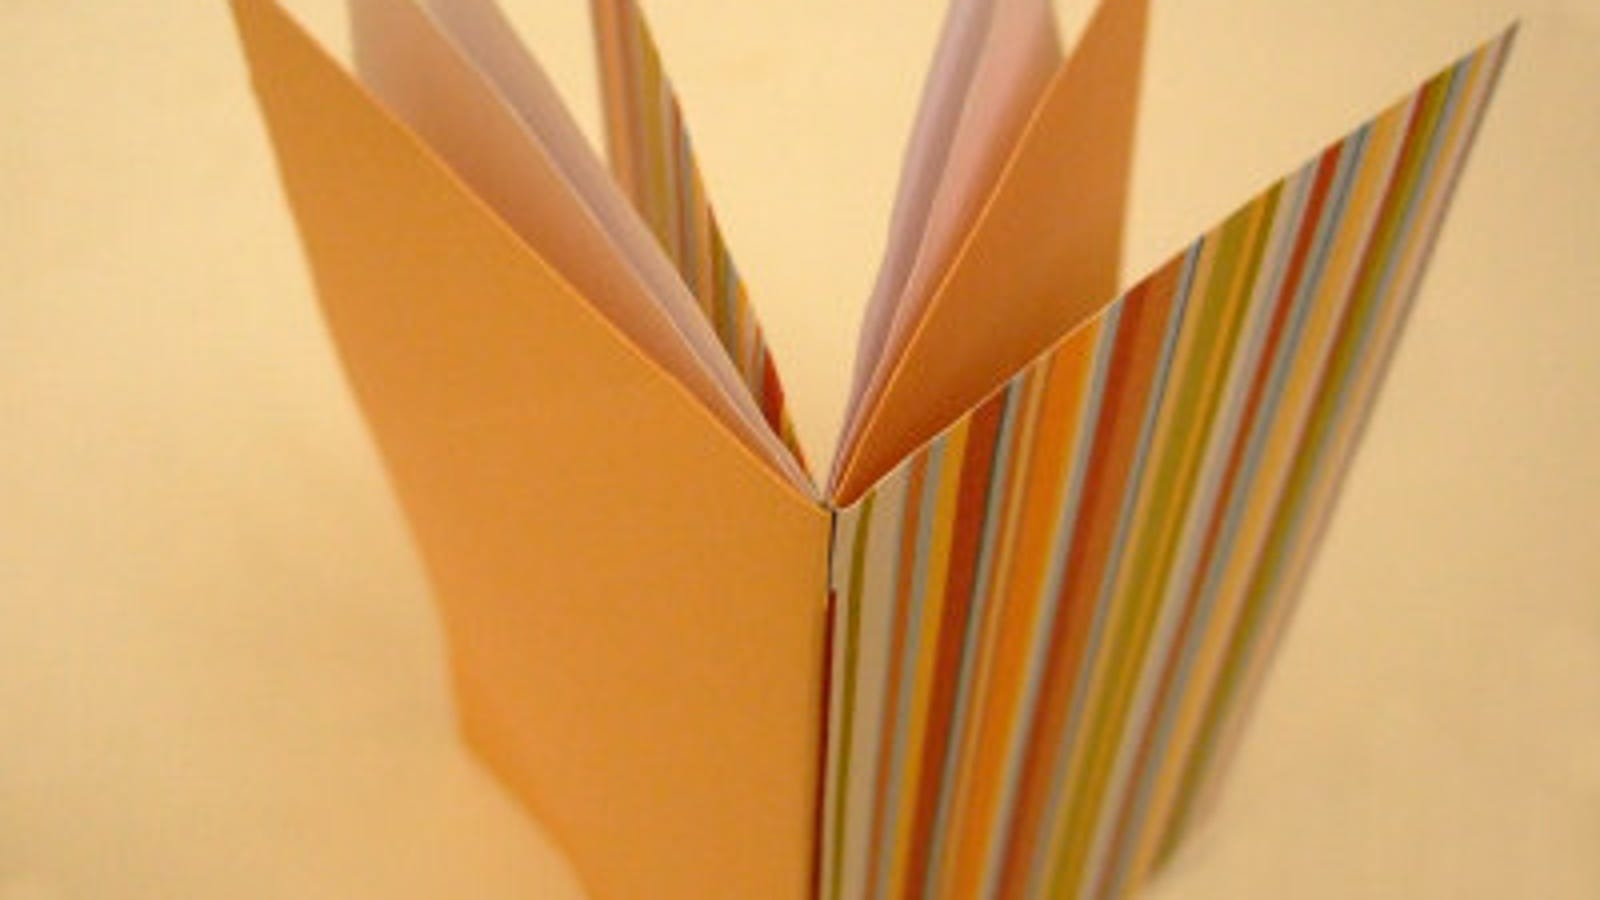 Bind Paper Into A Booklet With Just Some Clever Folds And Cuts